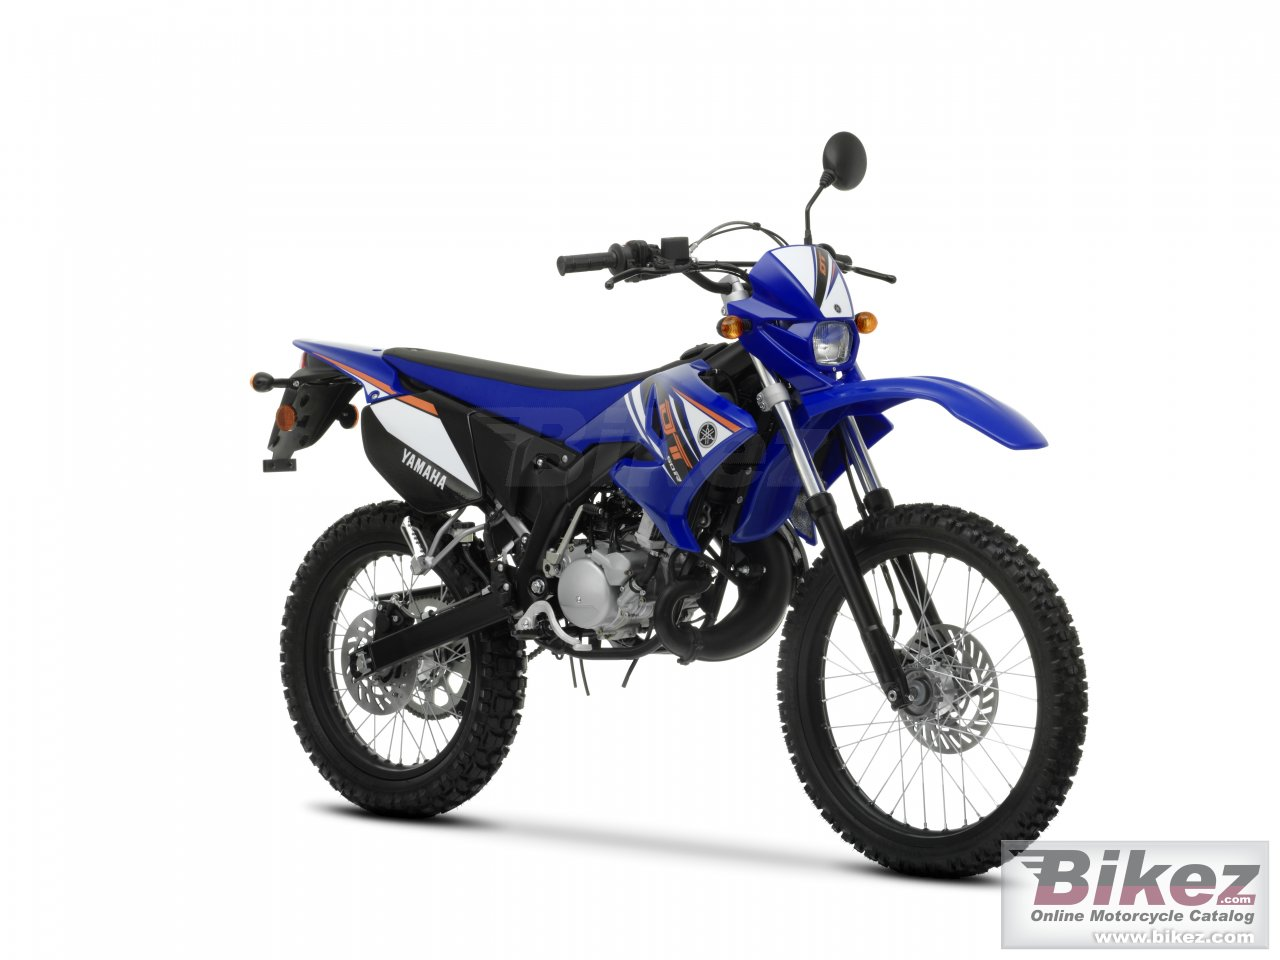 Big Yamaha dt50r picture and wallpaper from Bikez.com